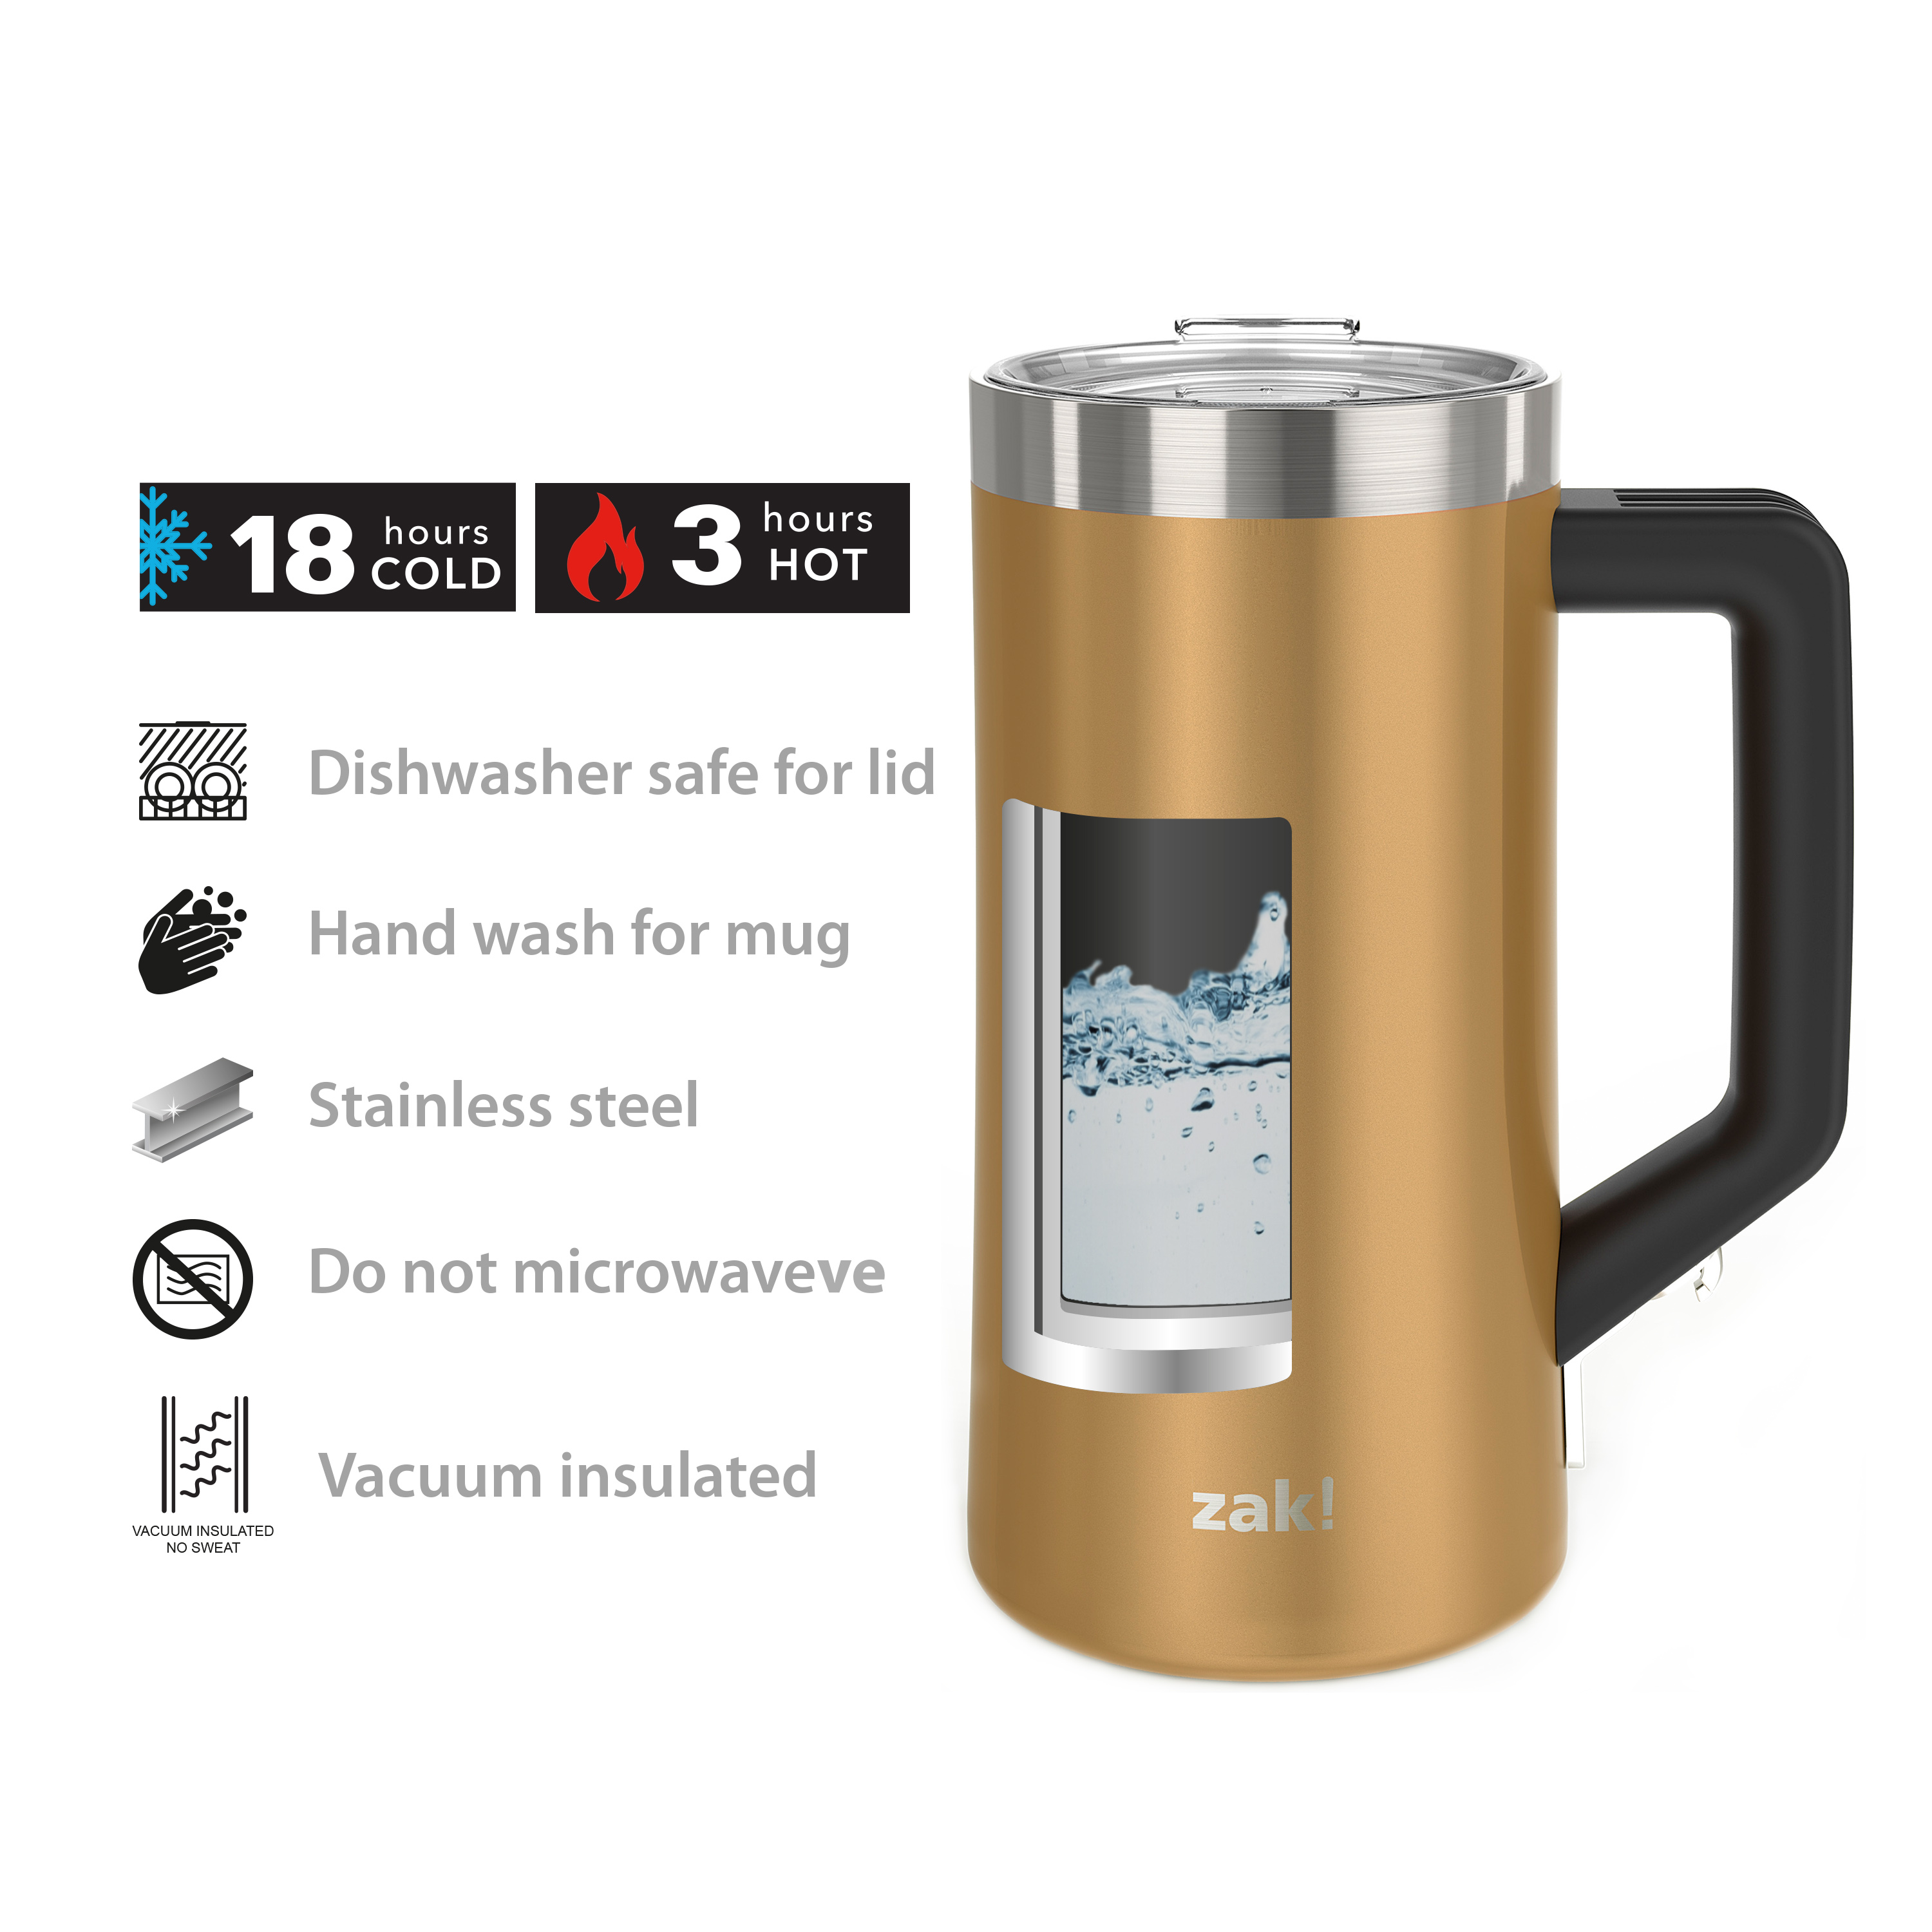 Creston 25 ounce Stainless Steel Vacuum Insulated Beer Stein, Copper slideshow image 6